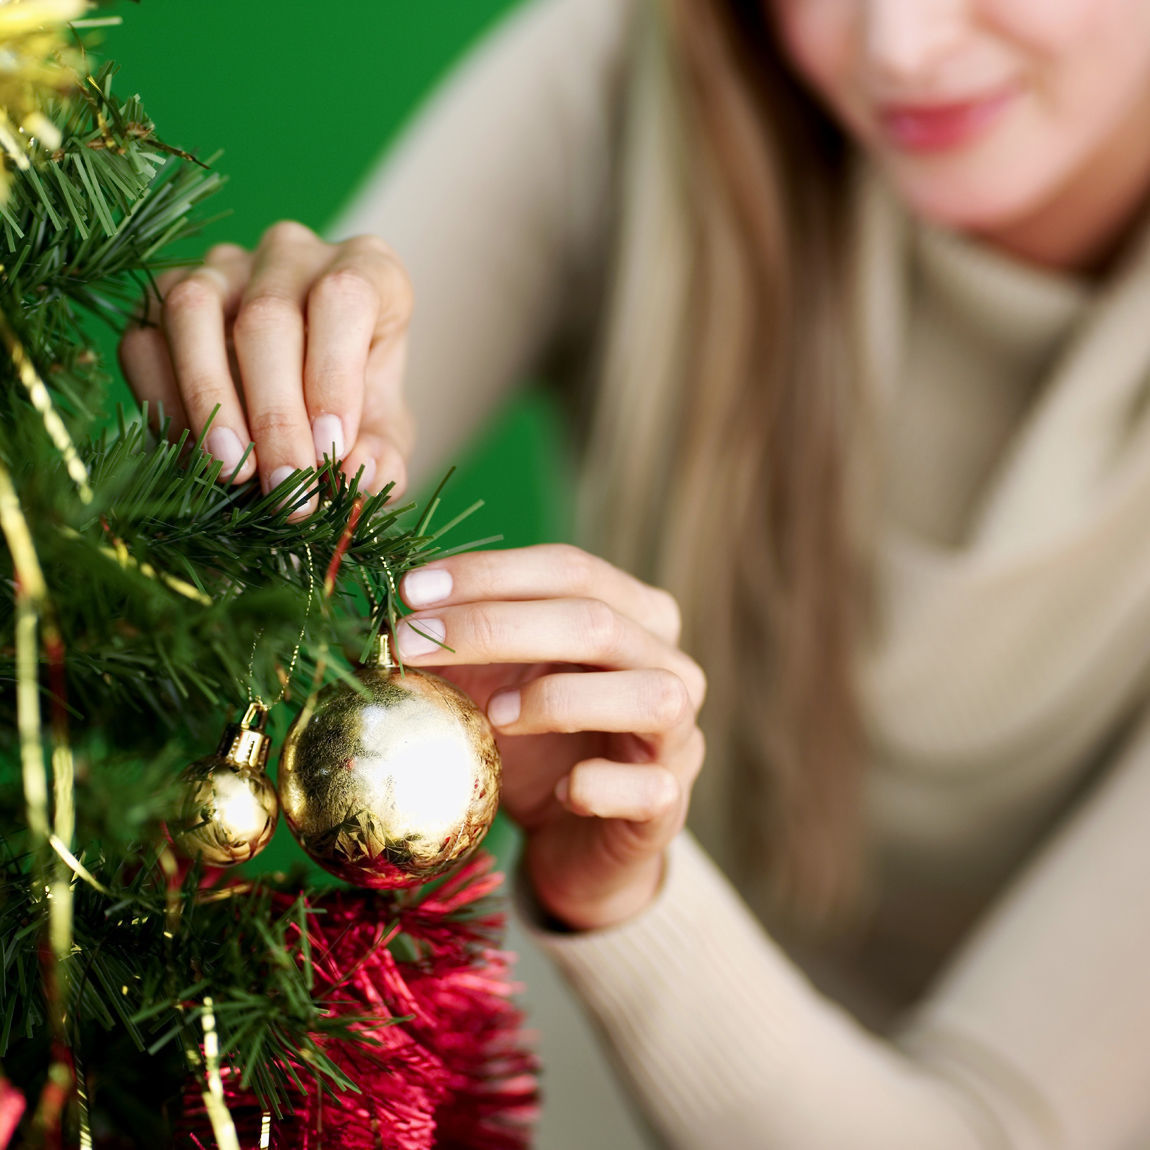 Decorating your home for the holidays can lift your spirits